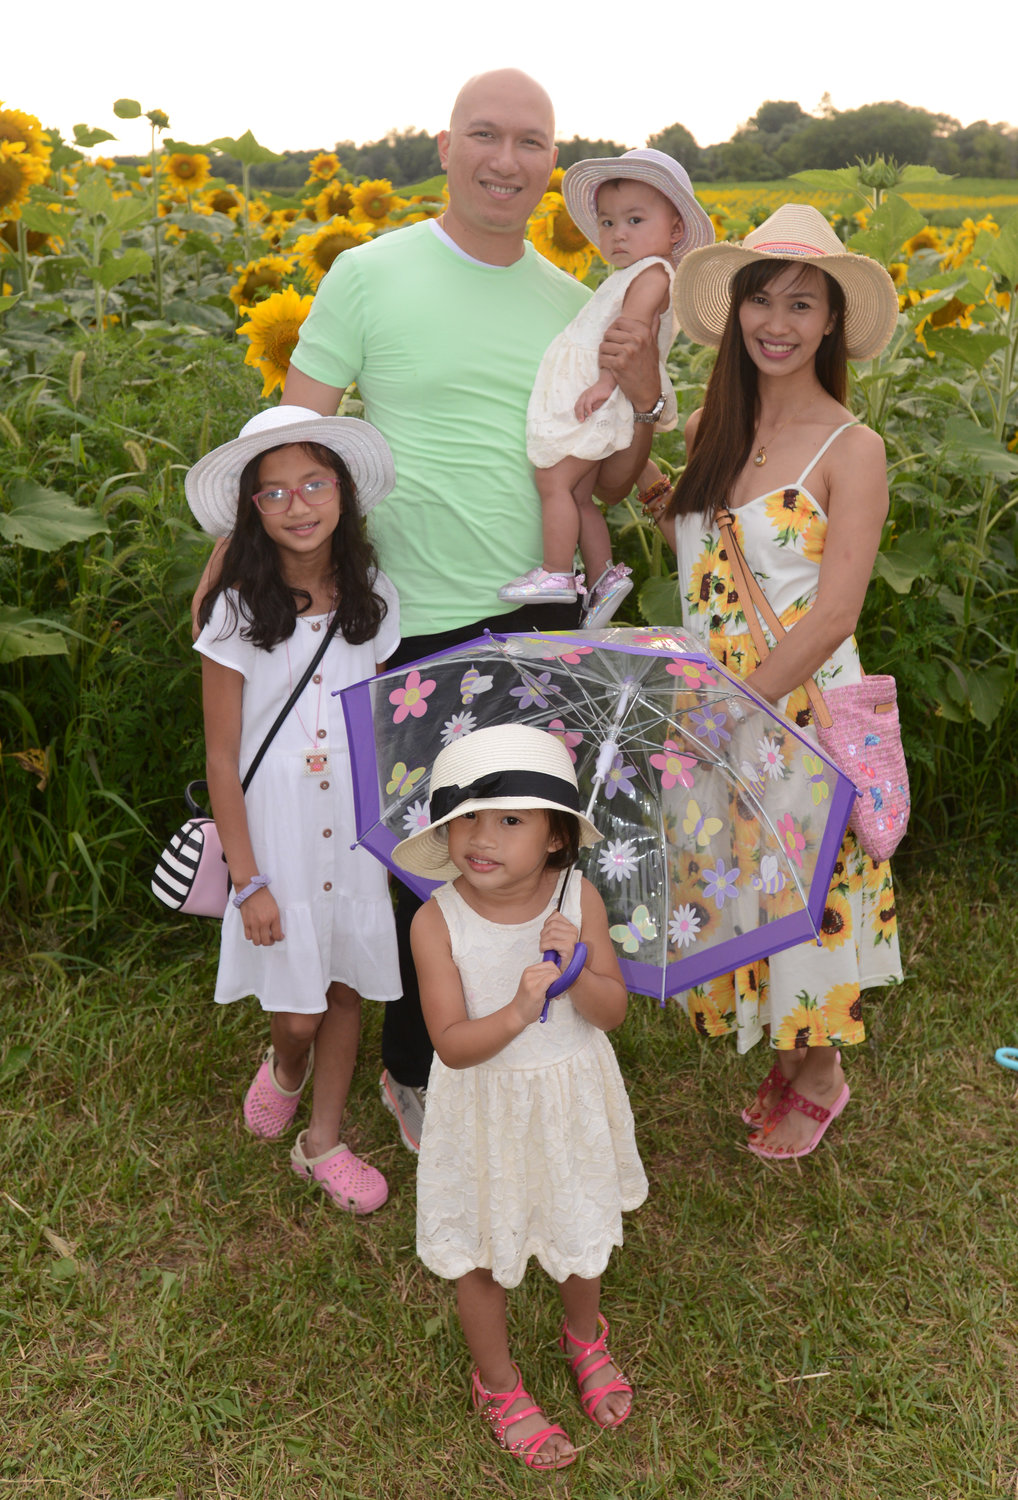 CAPTURING THE MOMENT — The Cruz family, who came all the way from Albany to enjoy the Wagner Farms sunflower fields, pose for a photo before taking their own selfies amid the late summer blooms. The family includes: Terence Cruz, holding Adeline Rose, 1; Evean Cruz, 9; mom Nelia Cruz; and Celyna Cruz, 3, with a cheerful umbrella.